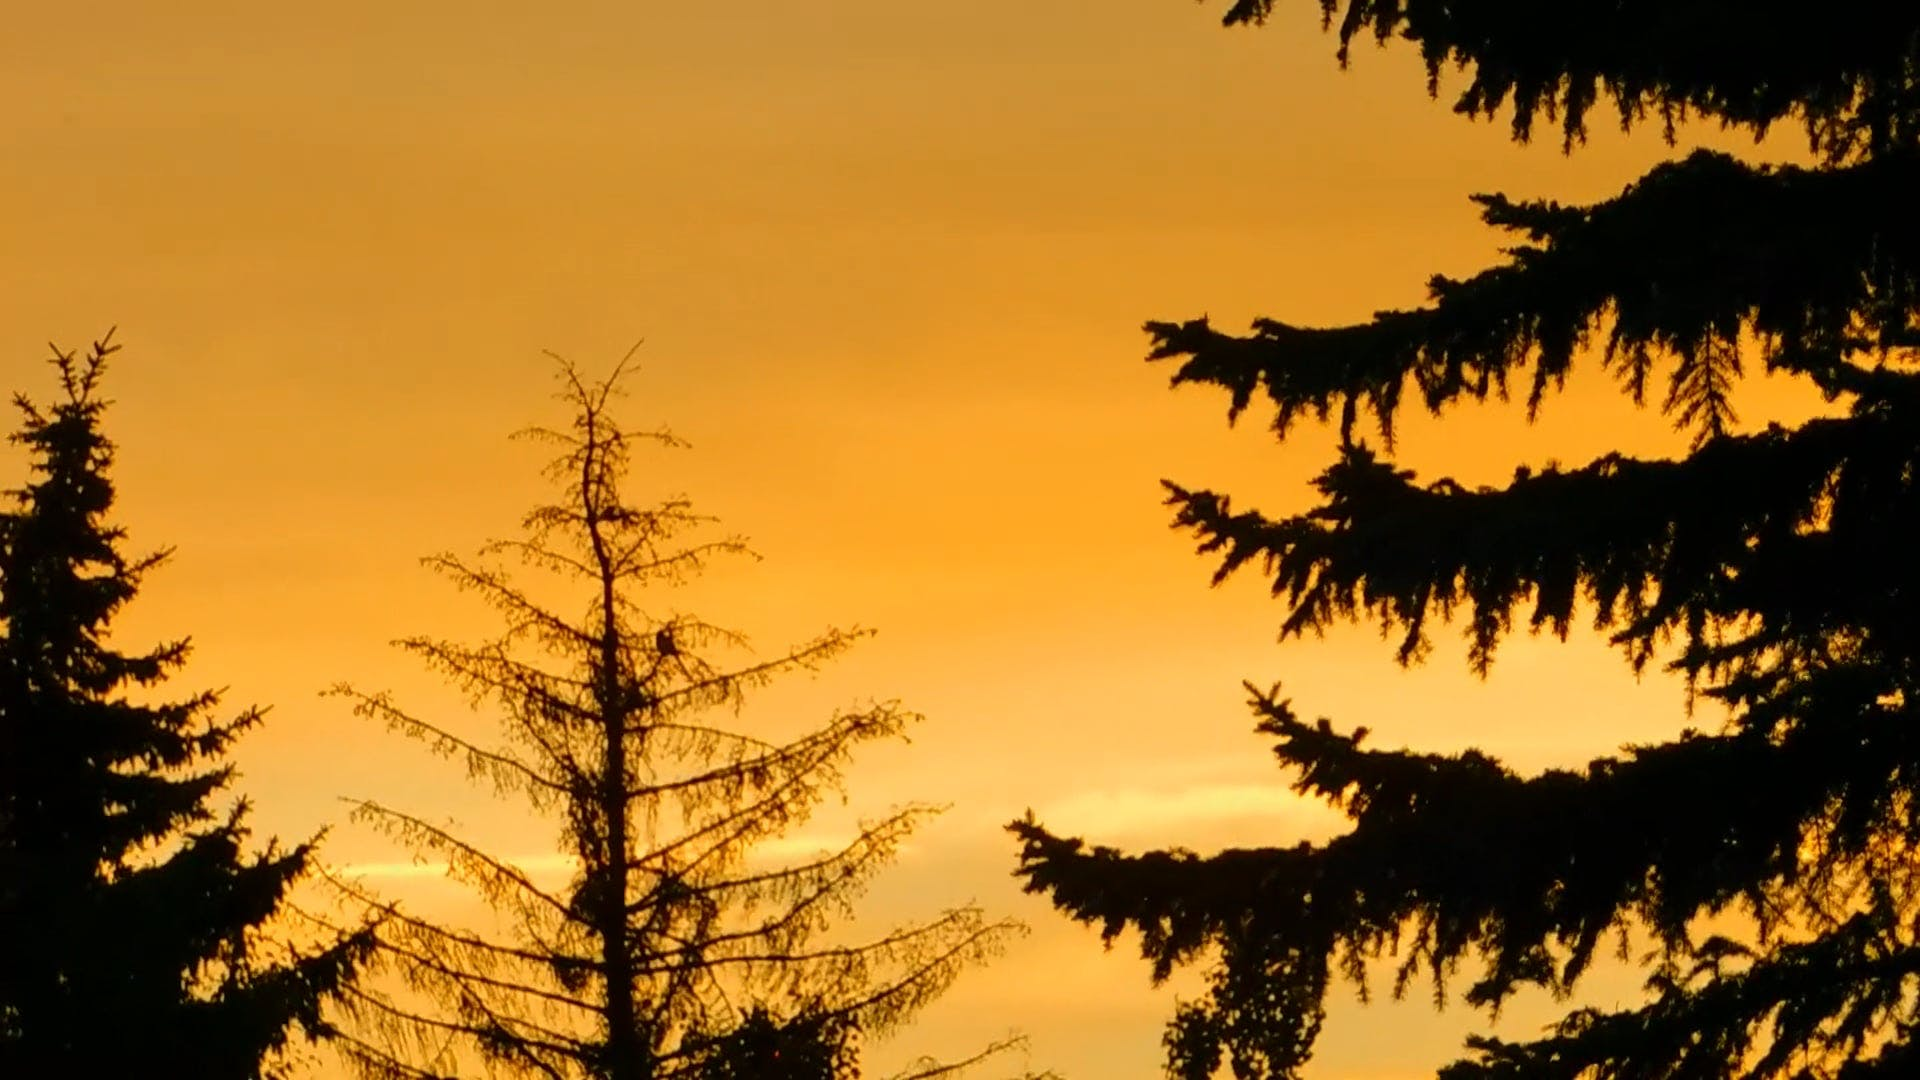 Silhouette Of Trees At Sunrise